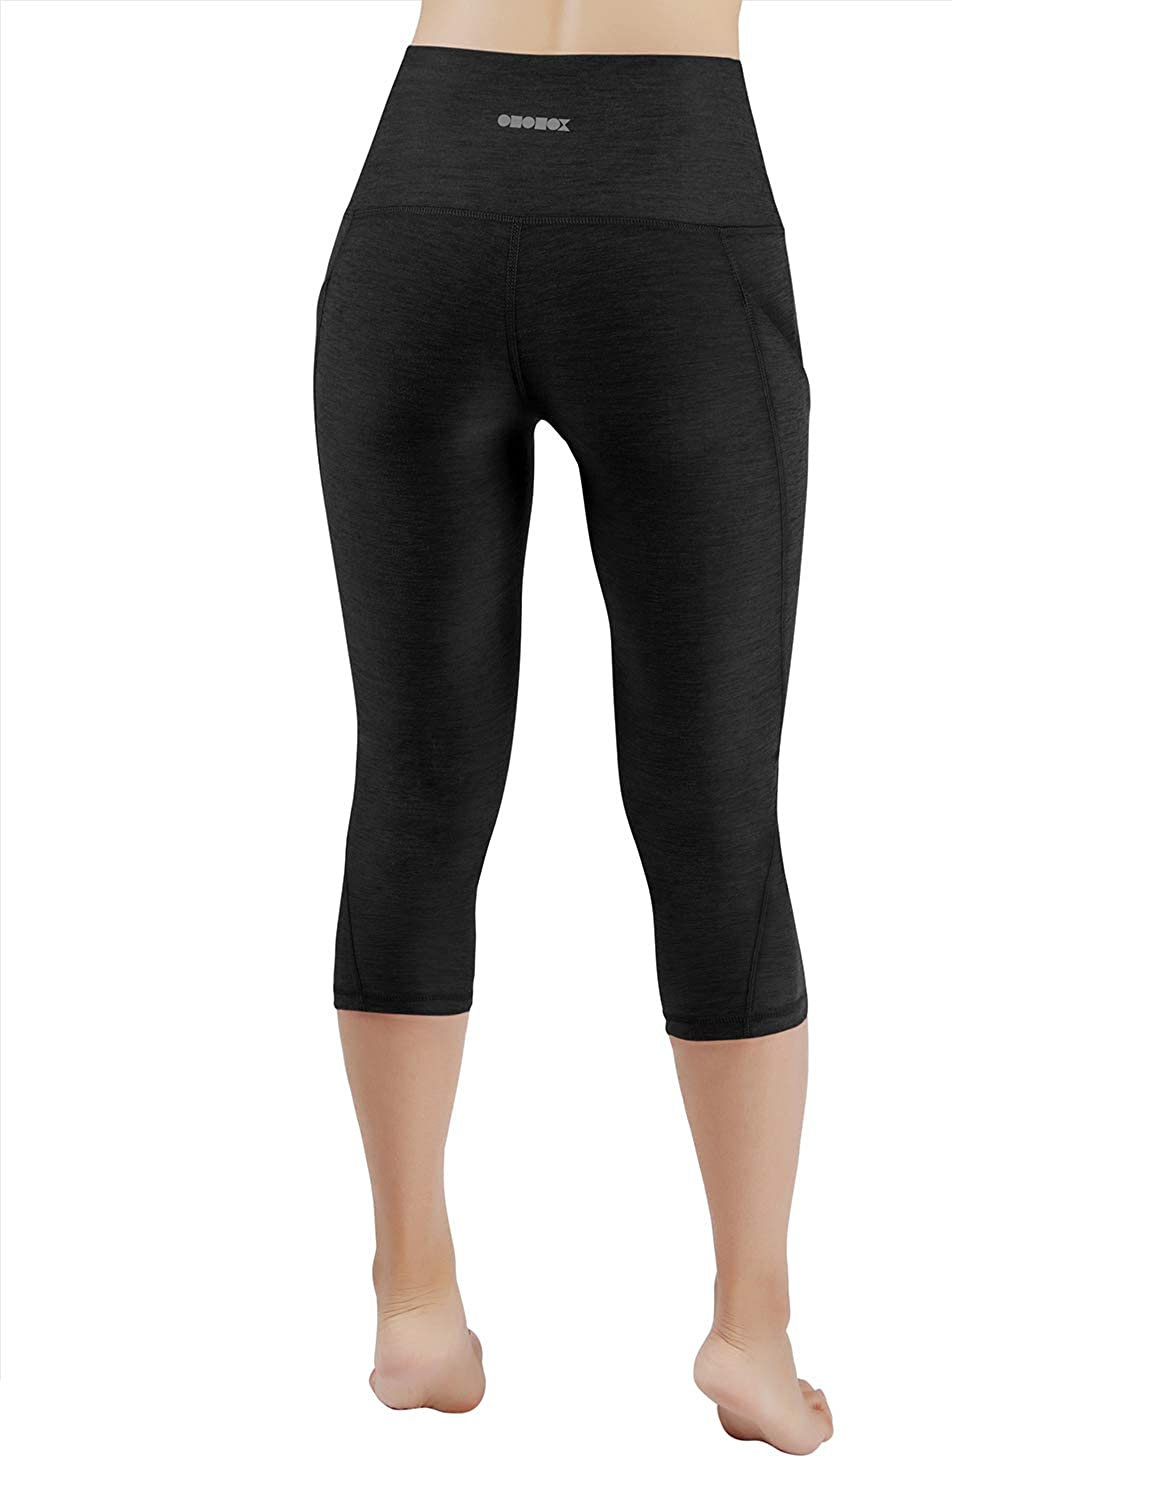 42eecd9abbe49 Amazon.com: ODODOS High Waist Out Pocket Yoga Capris Tummy Control Workout  Running 4 Way Stretch Yoga Pants,Leggings: Clothing